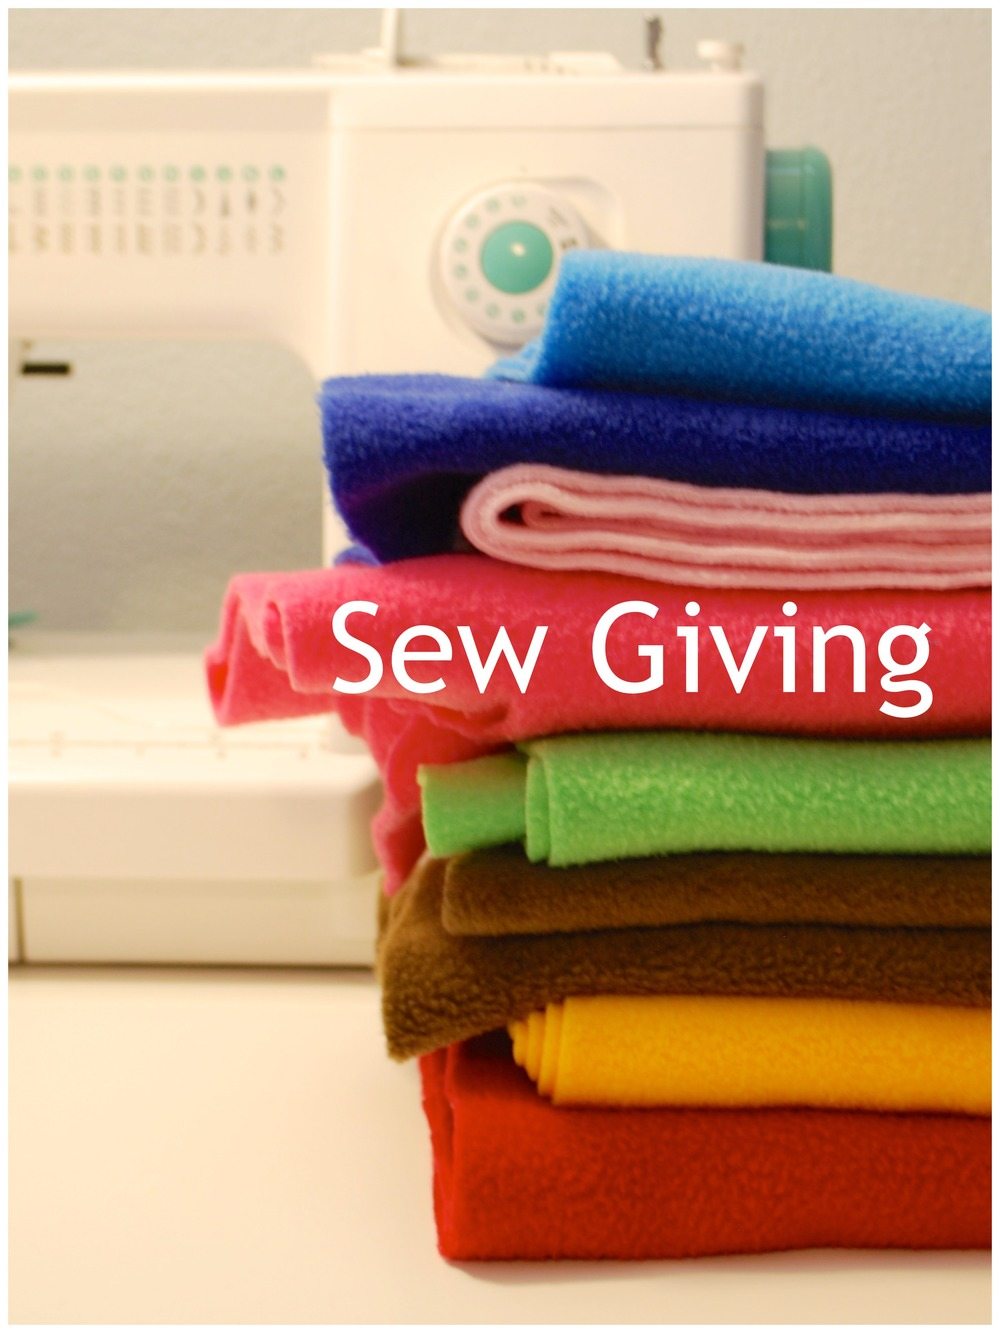 Sew Giving